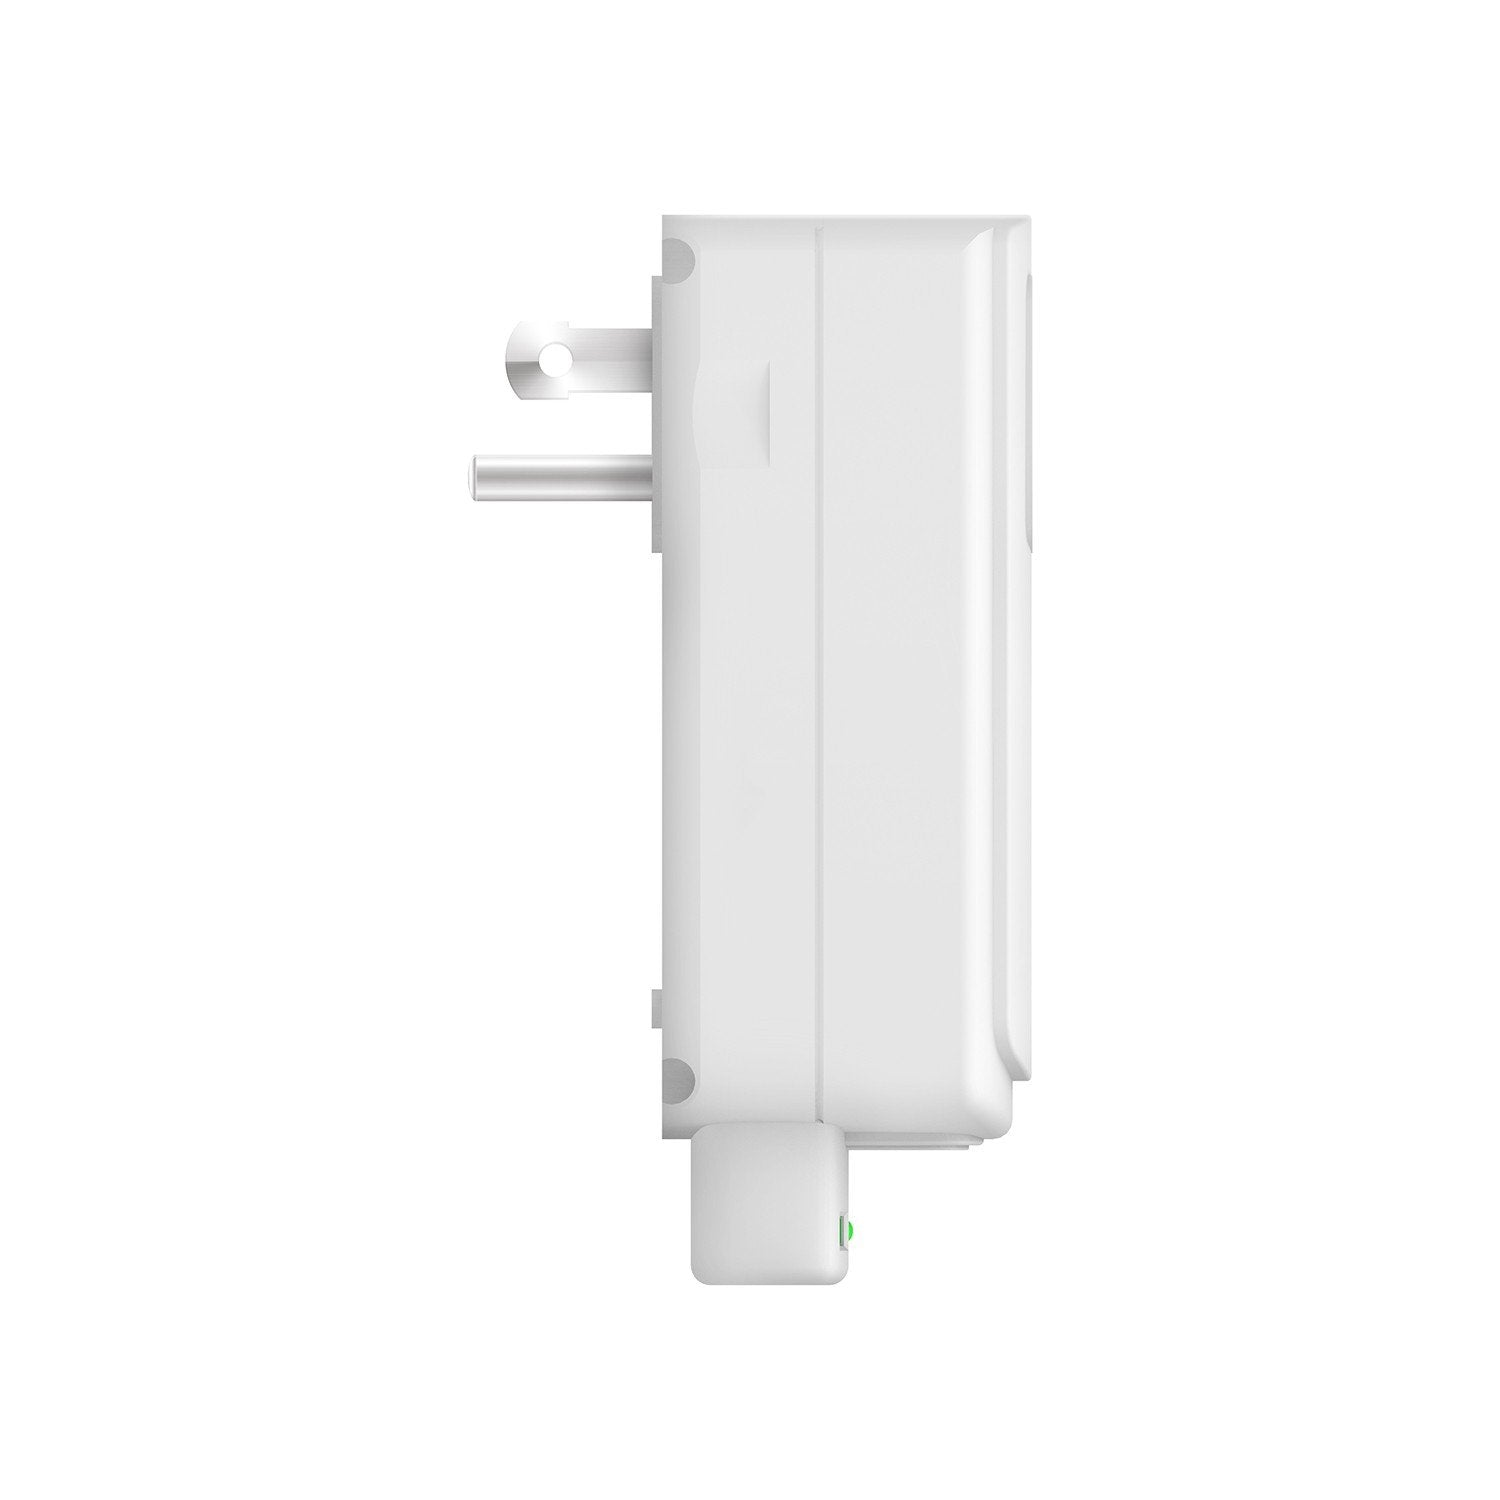 Insteon Remote Control Plug-in Low Voltage Controller